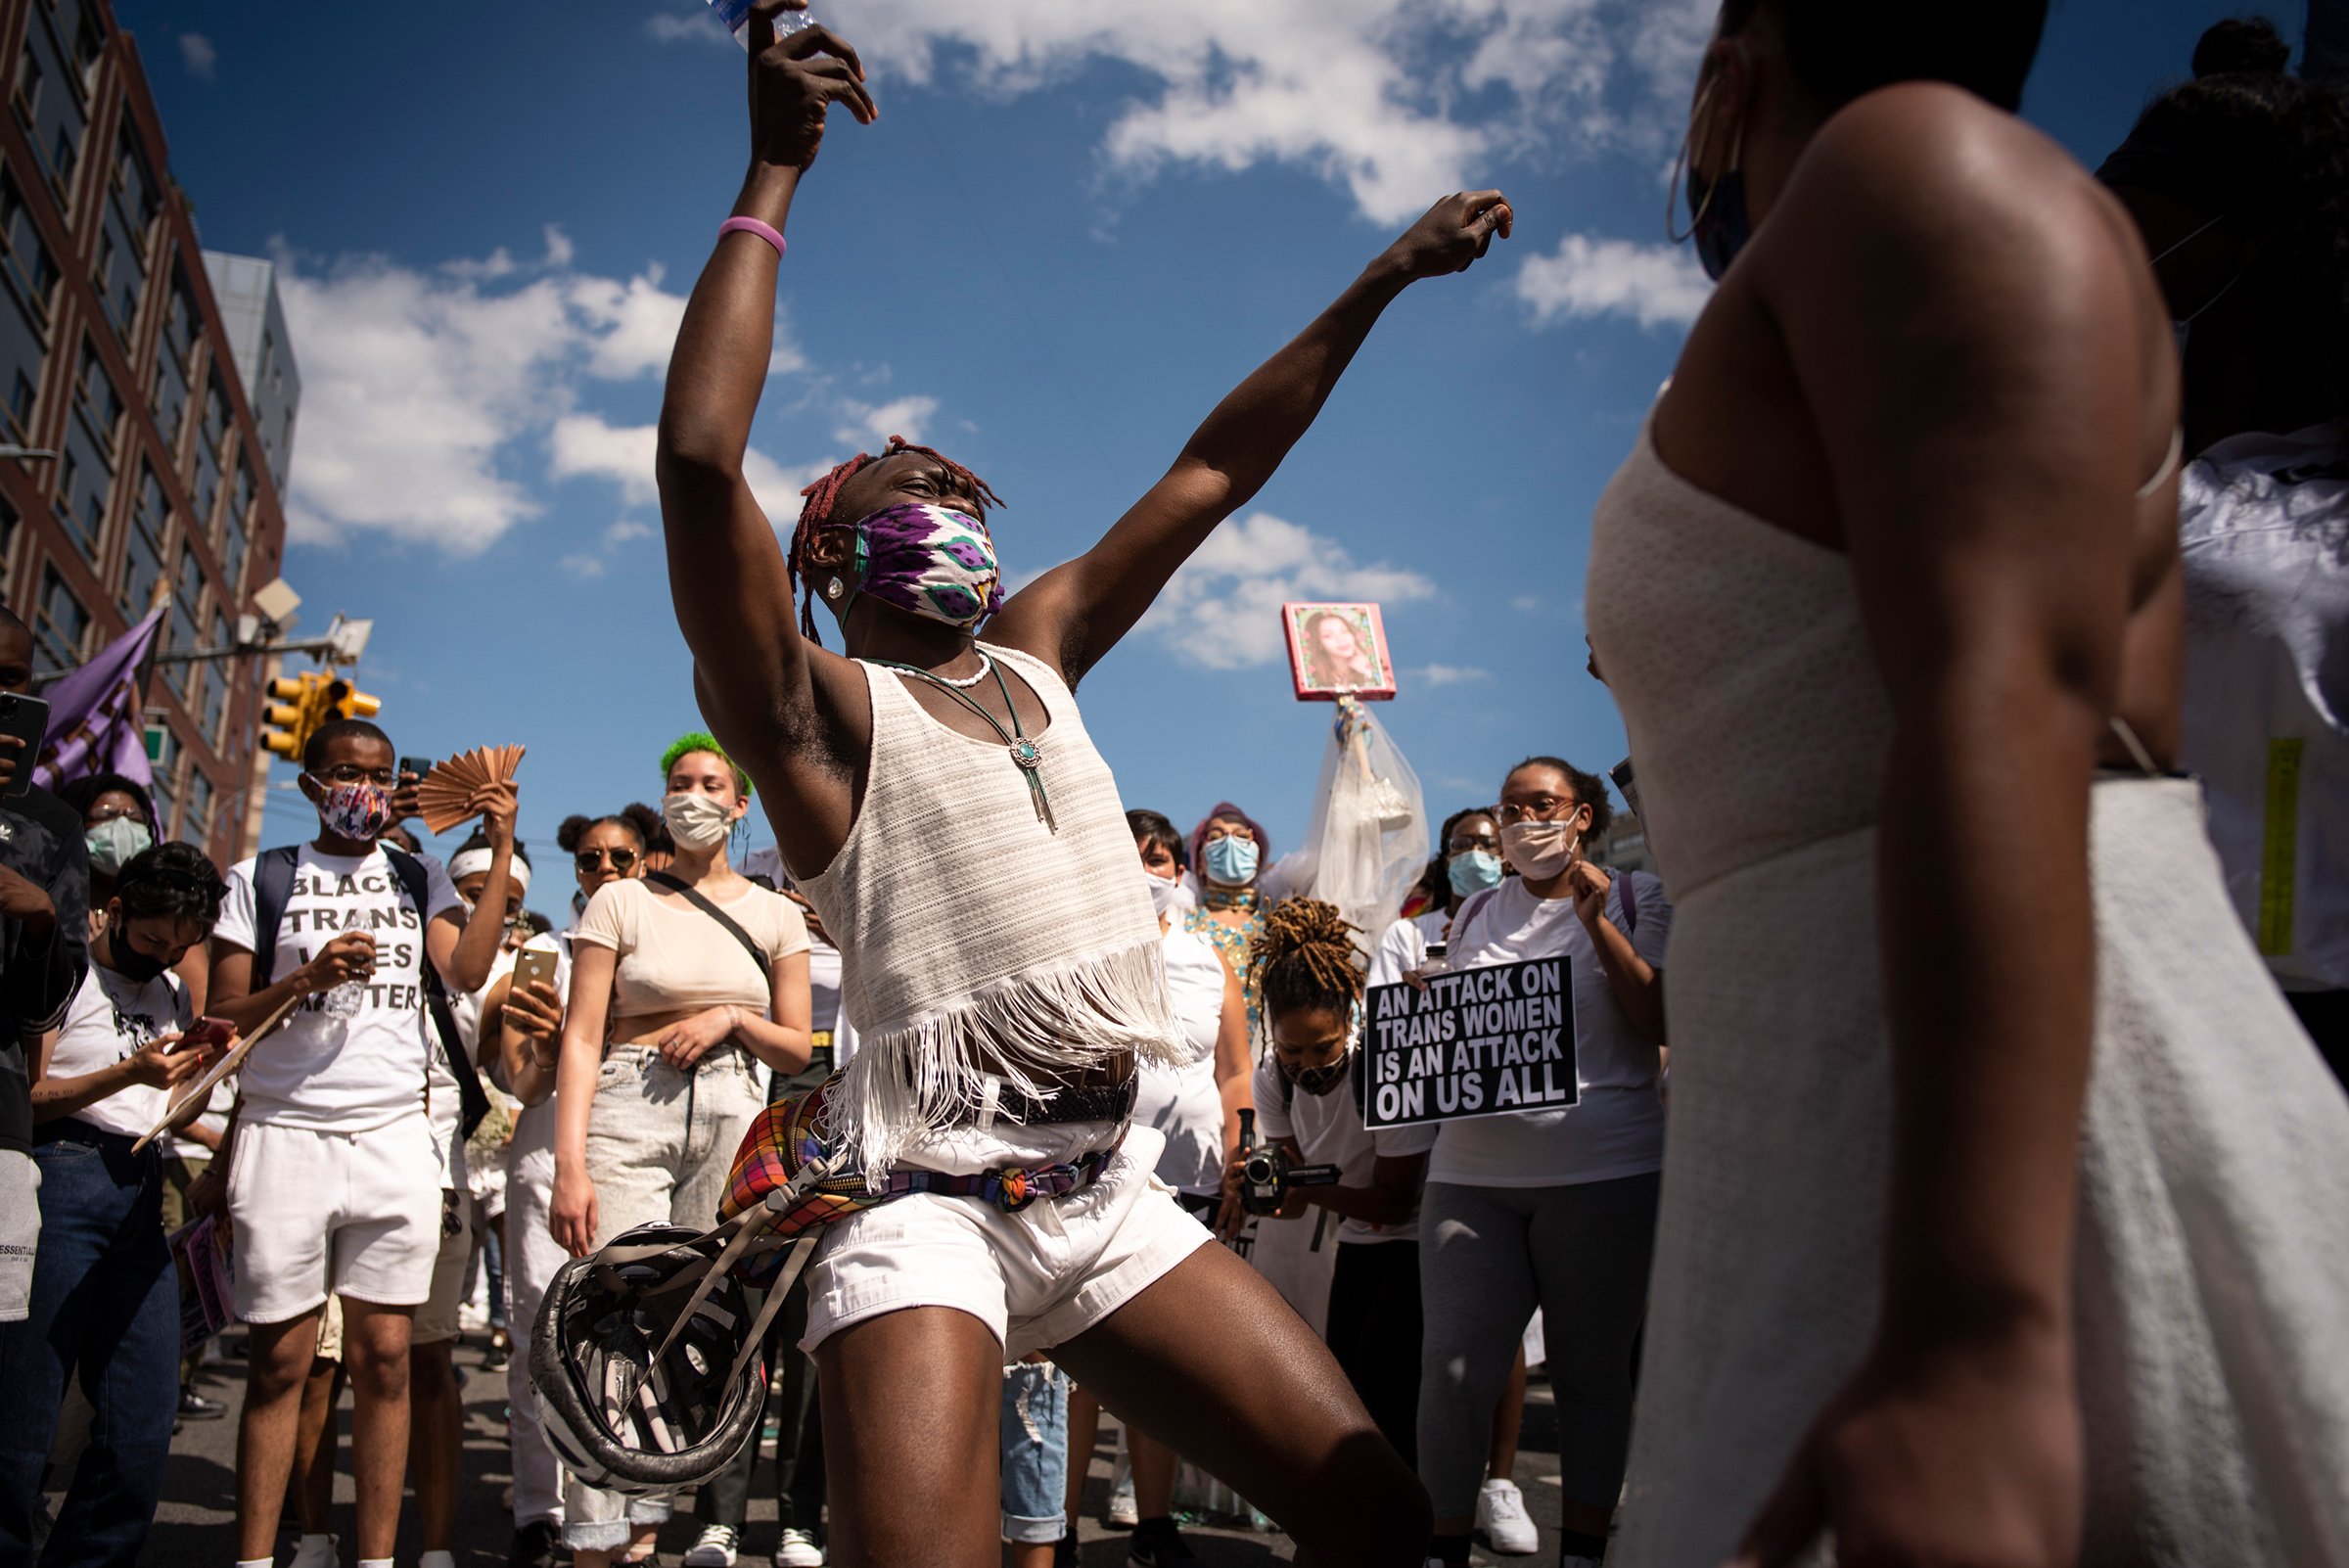 An estimated 15,000 supporters of Black Trans Lives marched in a rally from the Brooklyn Museum to Fort Greene Park in Brooklyn, N.Y. demanding justice for murdered members of their community on June 14, 2020.